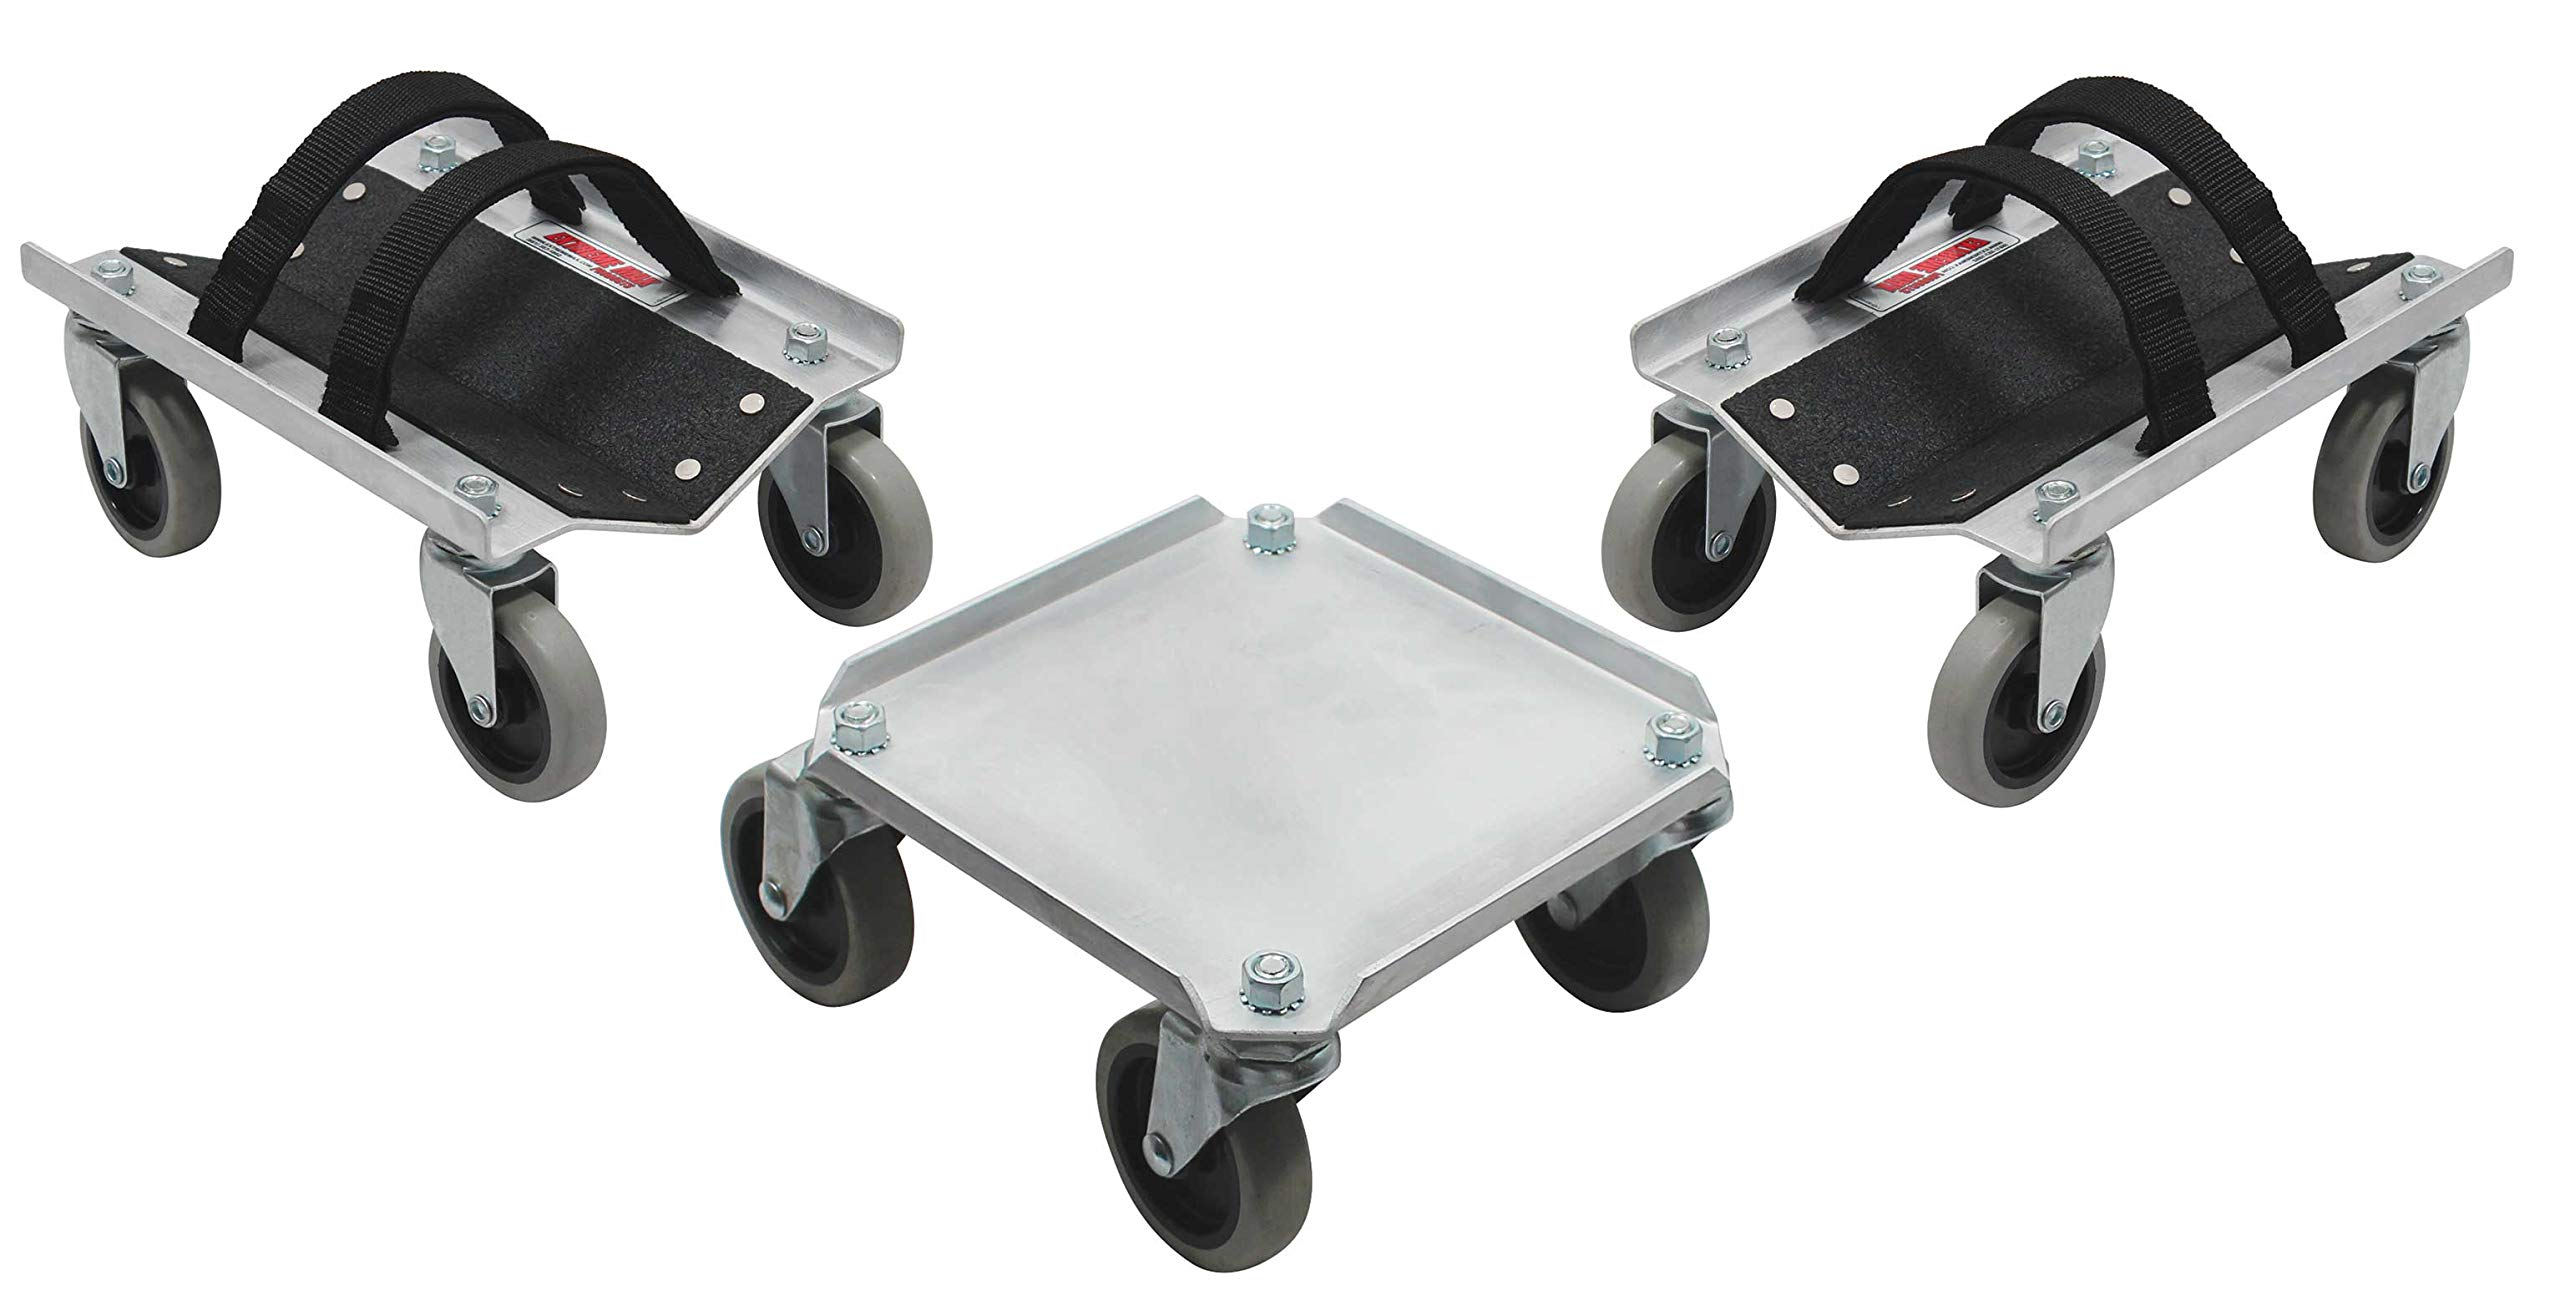 Extreme Max 5800.0225 V-Slide Snowmobile Dolly System - Aluminum by Extreme Max